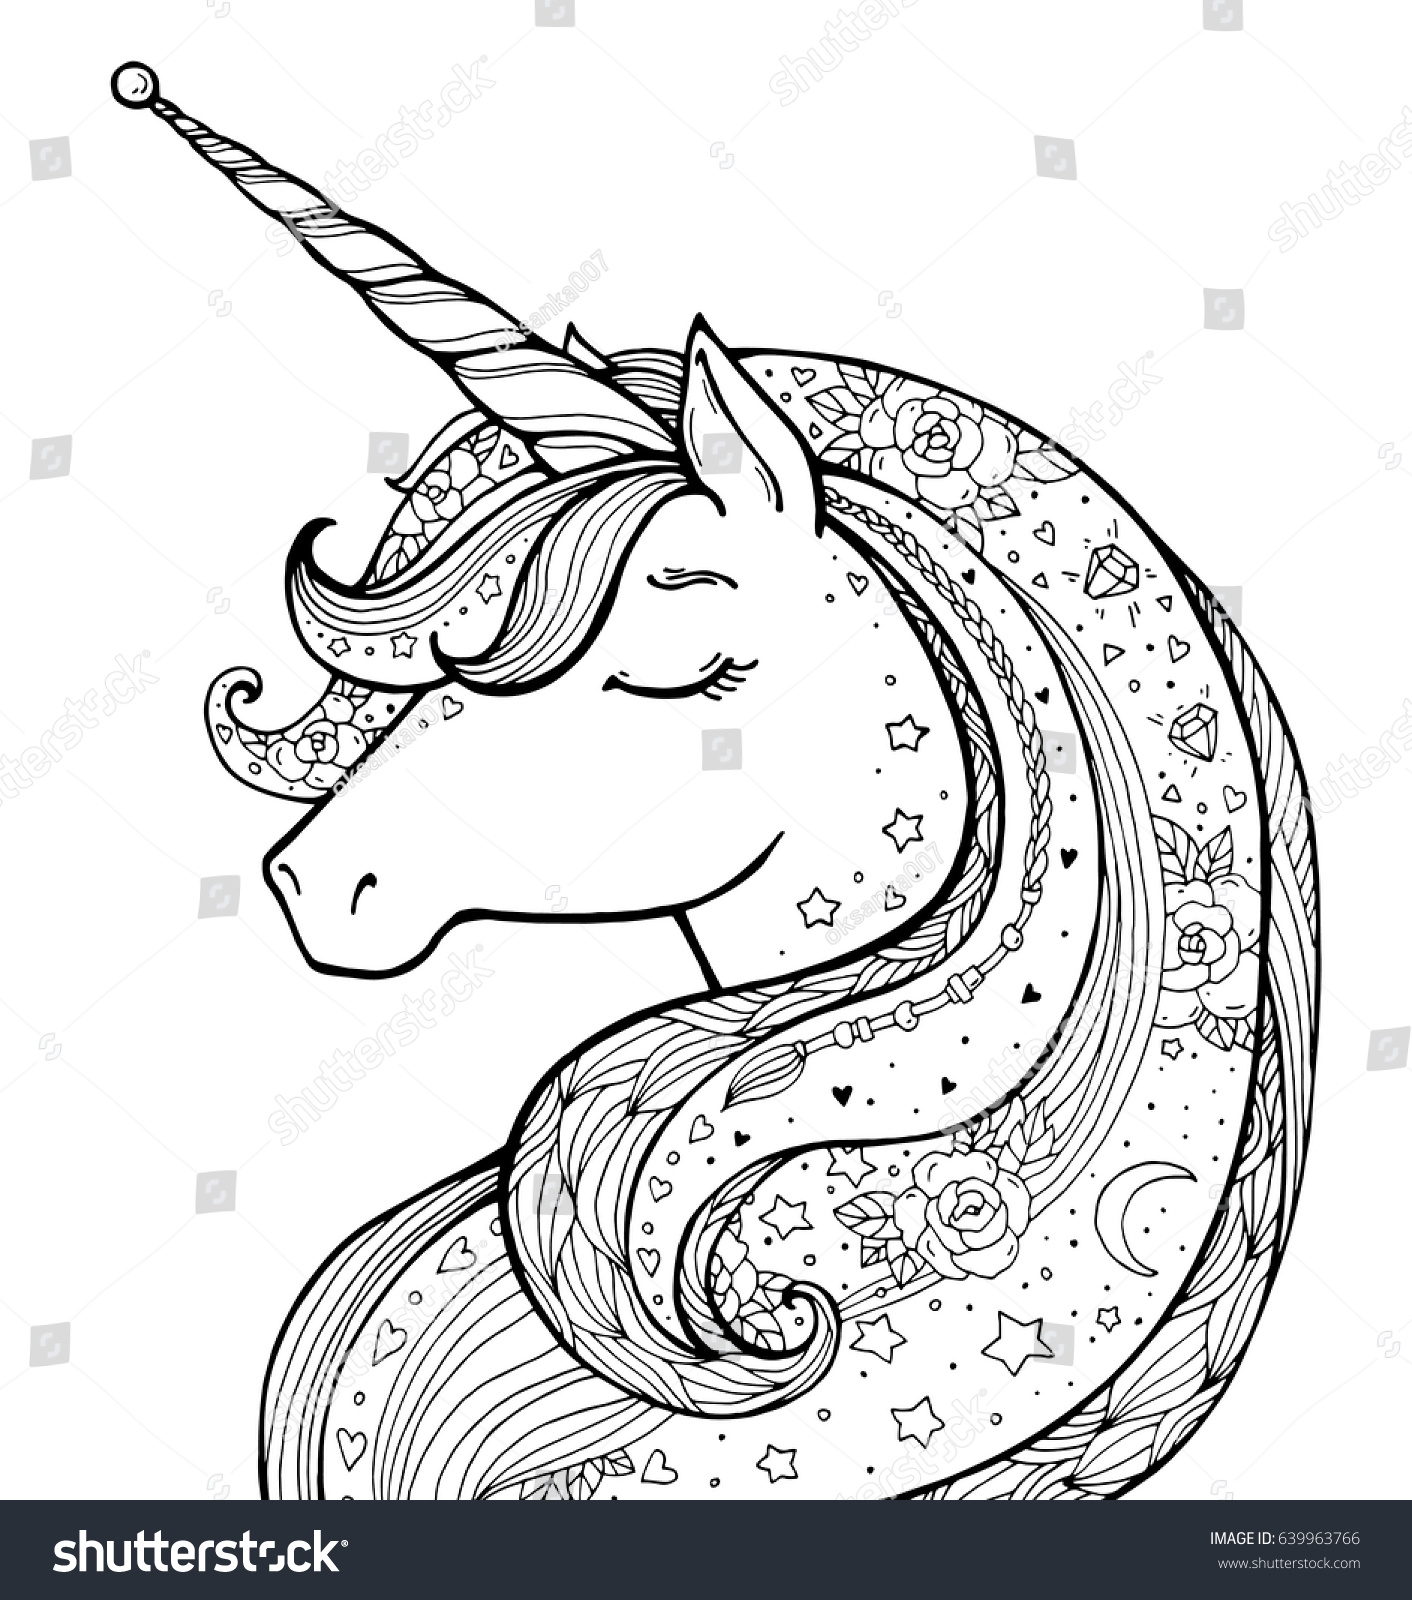 Unicorn Magical Animal Vector Artwork Black Stock Vector ...